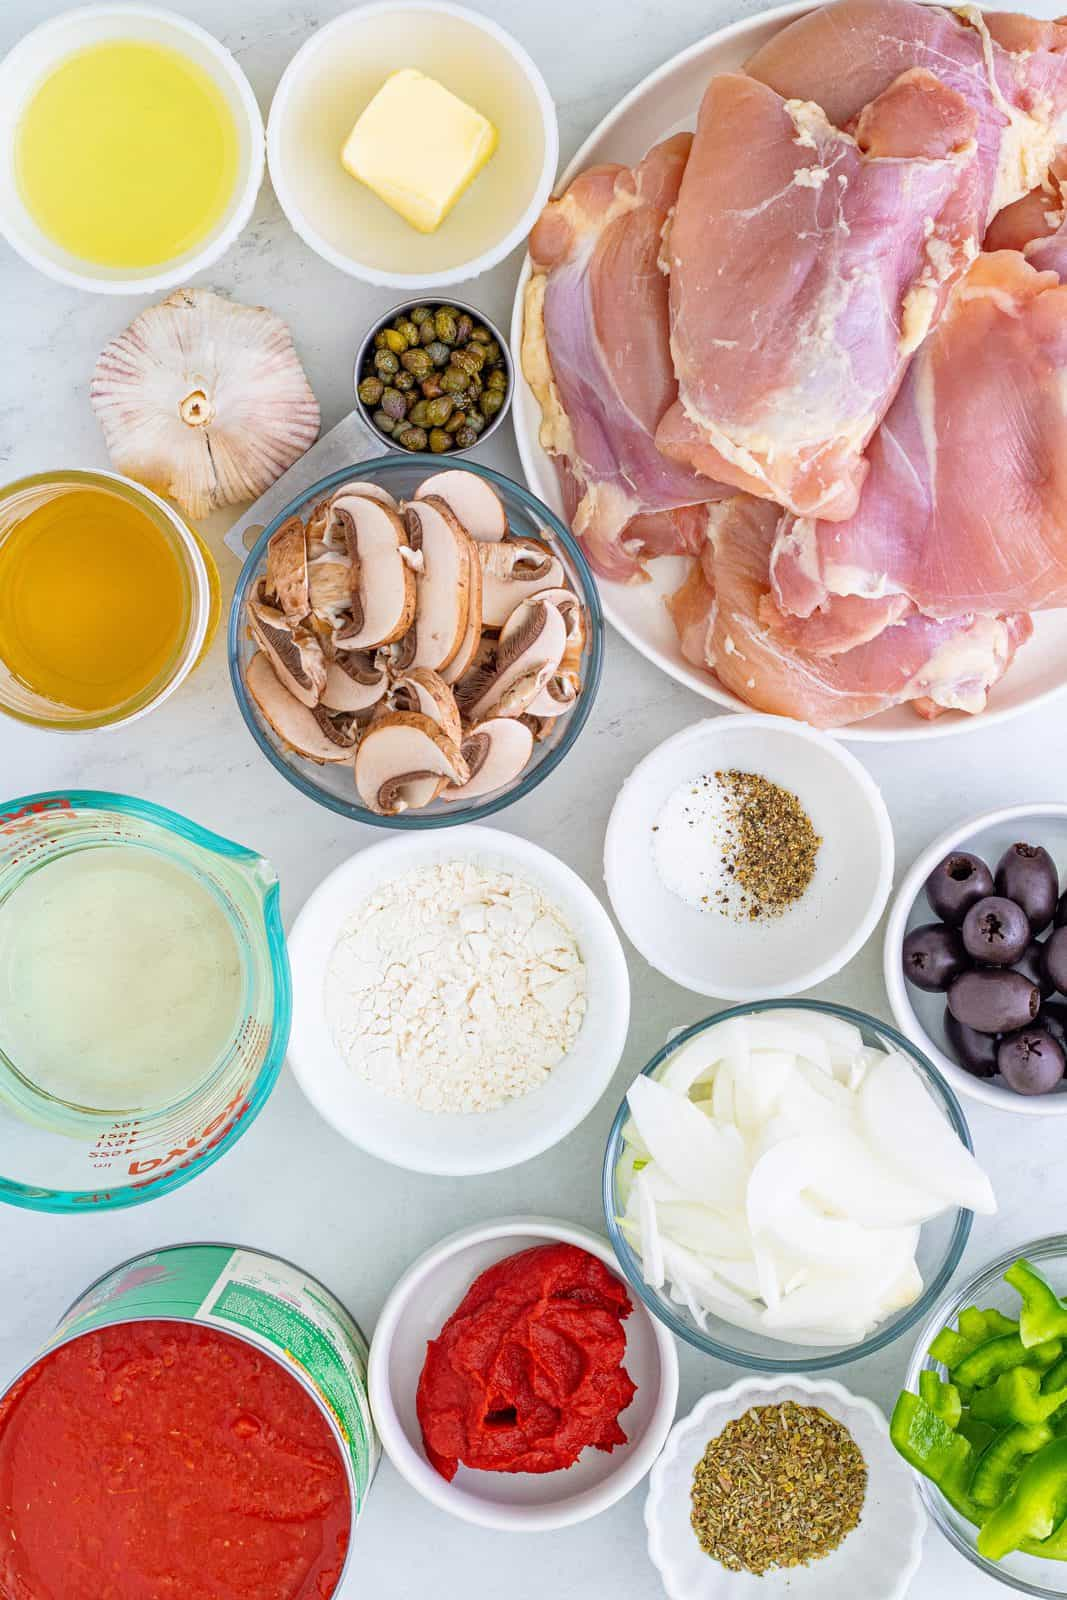 Ingredients needed: chicken thighs, kosher salt, pepper, all-purpose flour, vegetable oil, unsalted butter, onion, green bell pepper, mushrooms, garlic, dry white wine, crushed tomatoes with basil, chicken stock, tomato paste, ½ cup black pitted olives, capers, Italian seasoning, parsley and parmesan cheese.